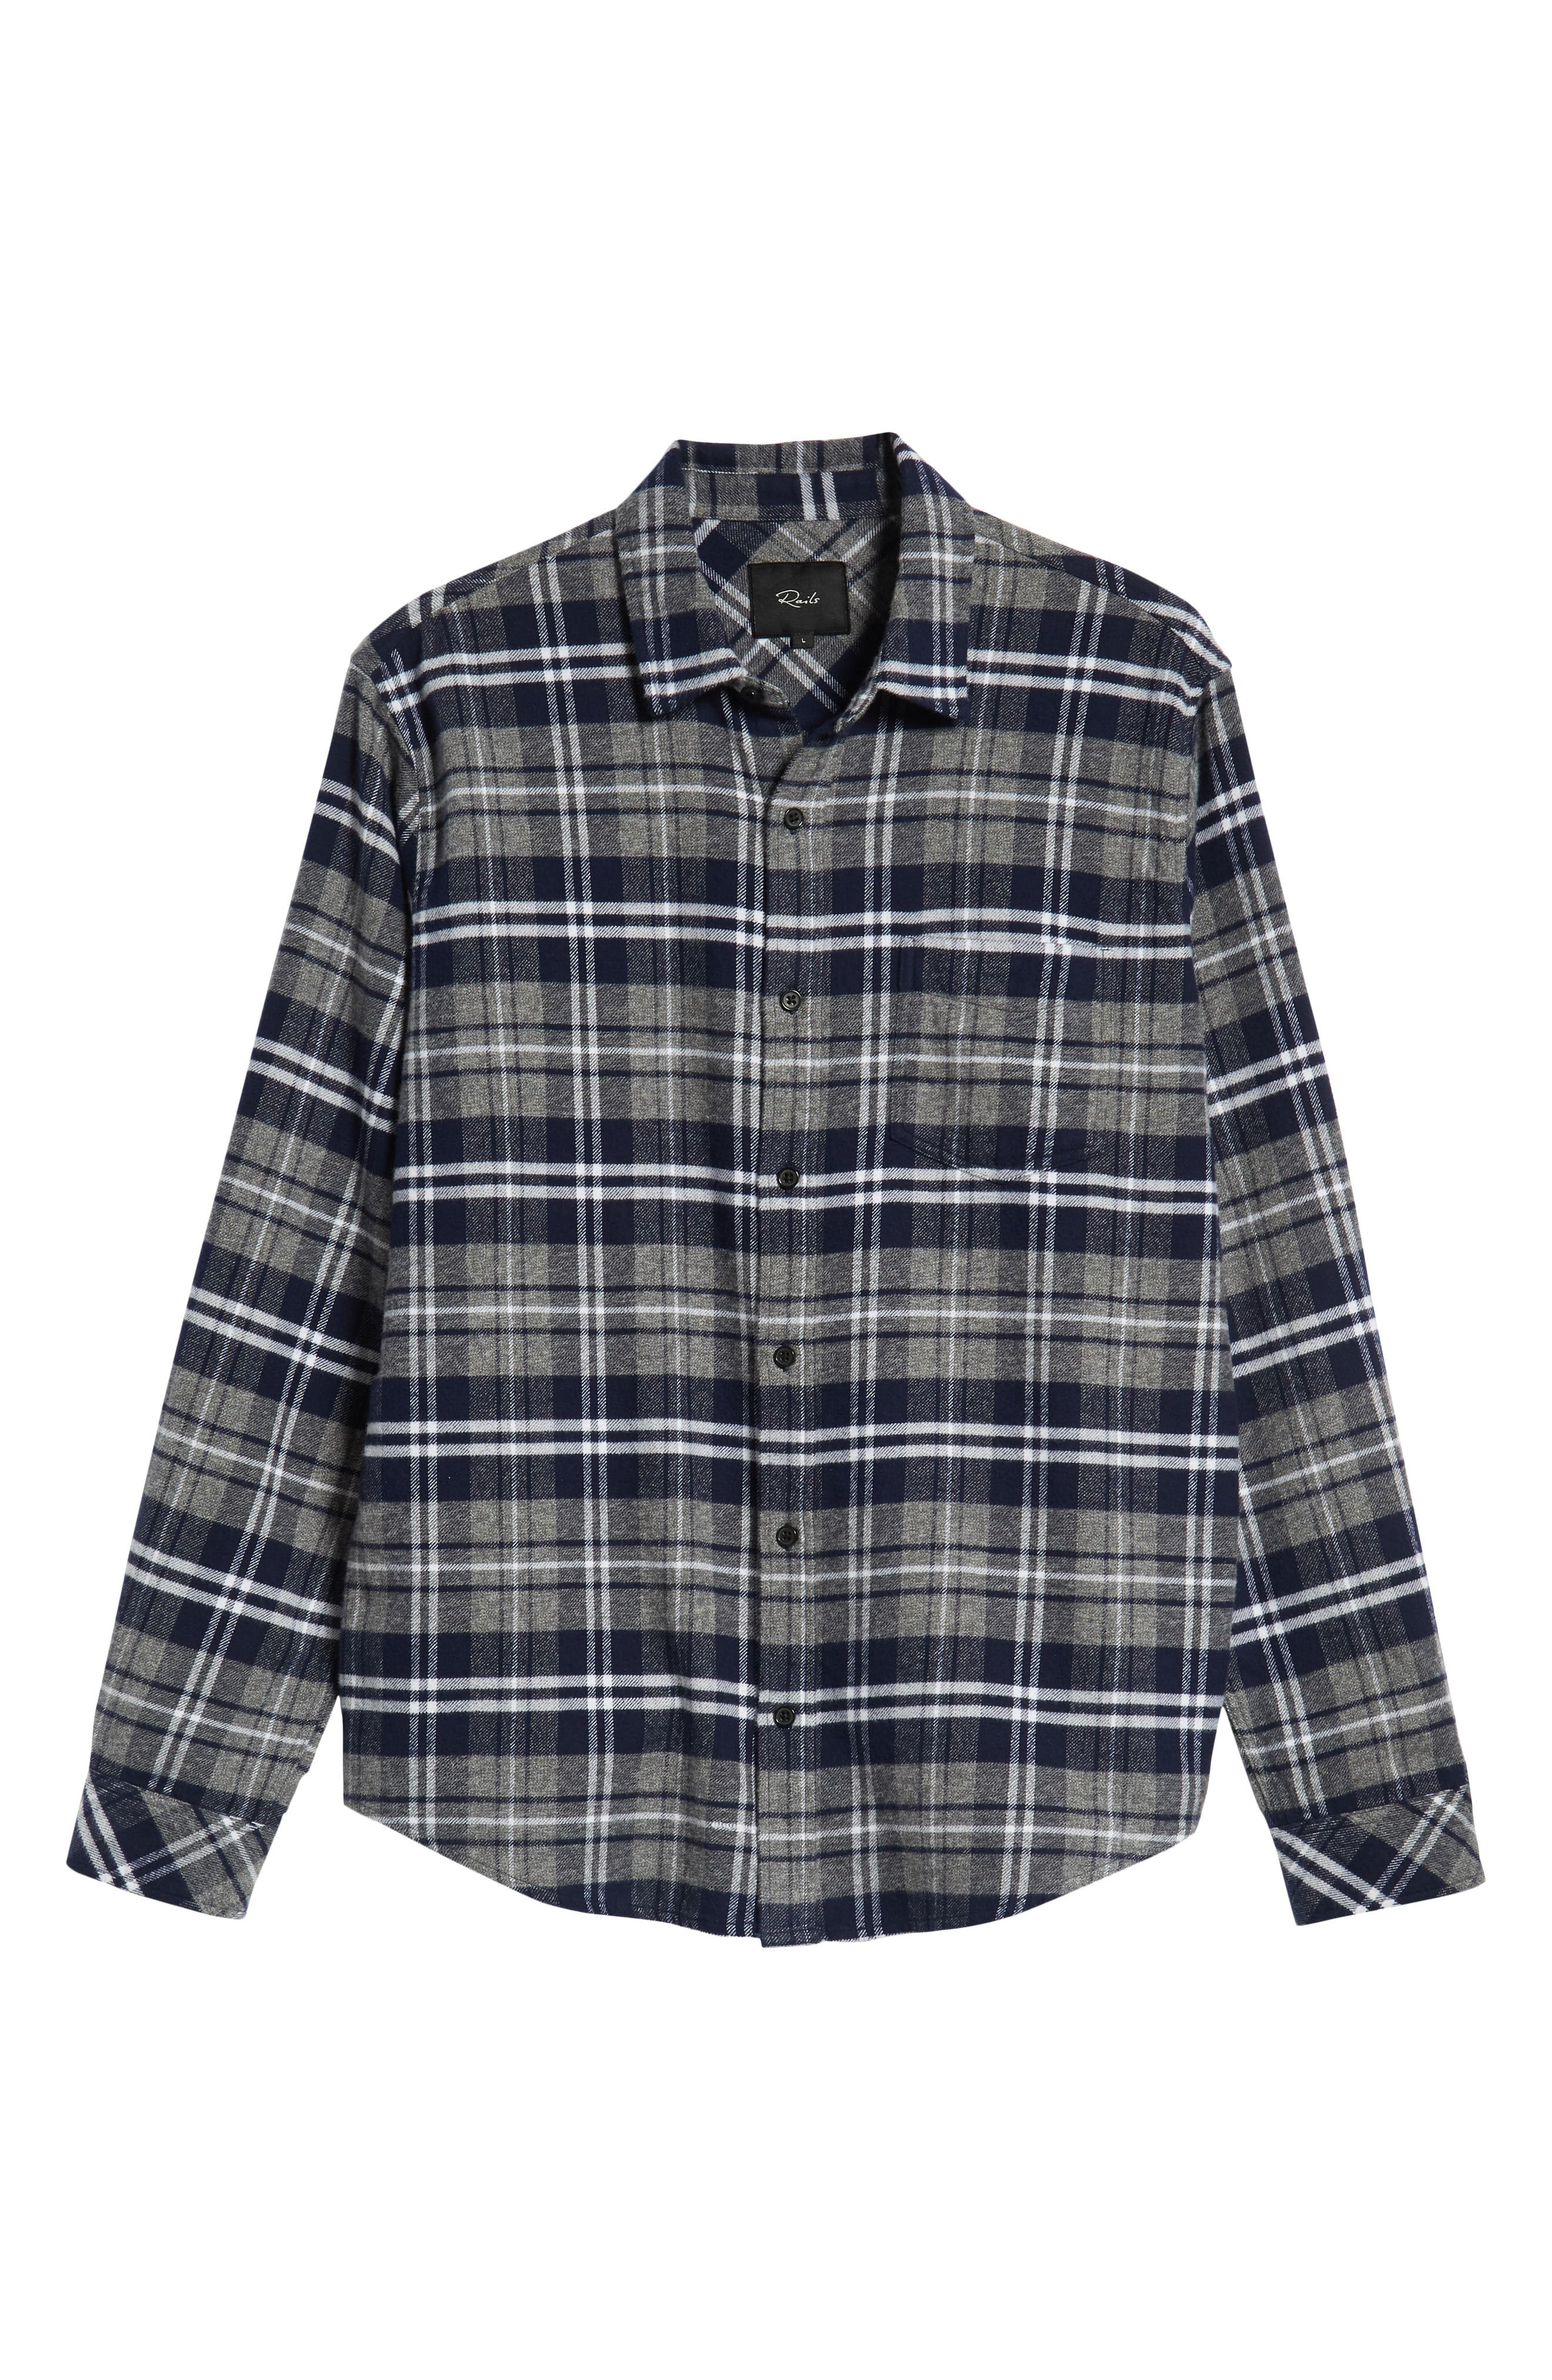 Forrest Slim Fit Plaid Flannel Sport Shirt,                             Alternate thumbnail 5, color,                             NAVY/LIGHT GREY/WHITE